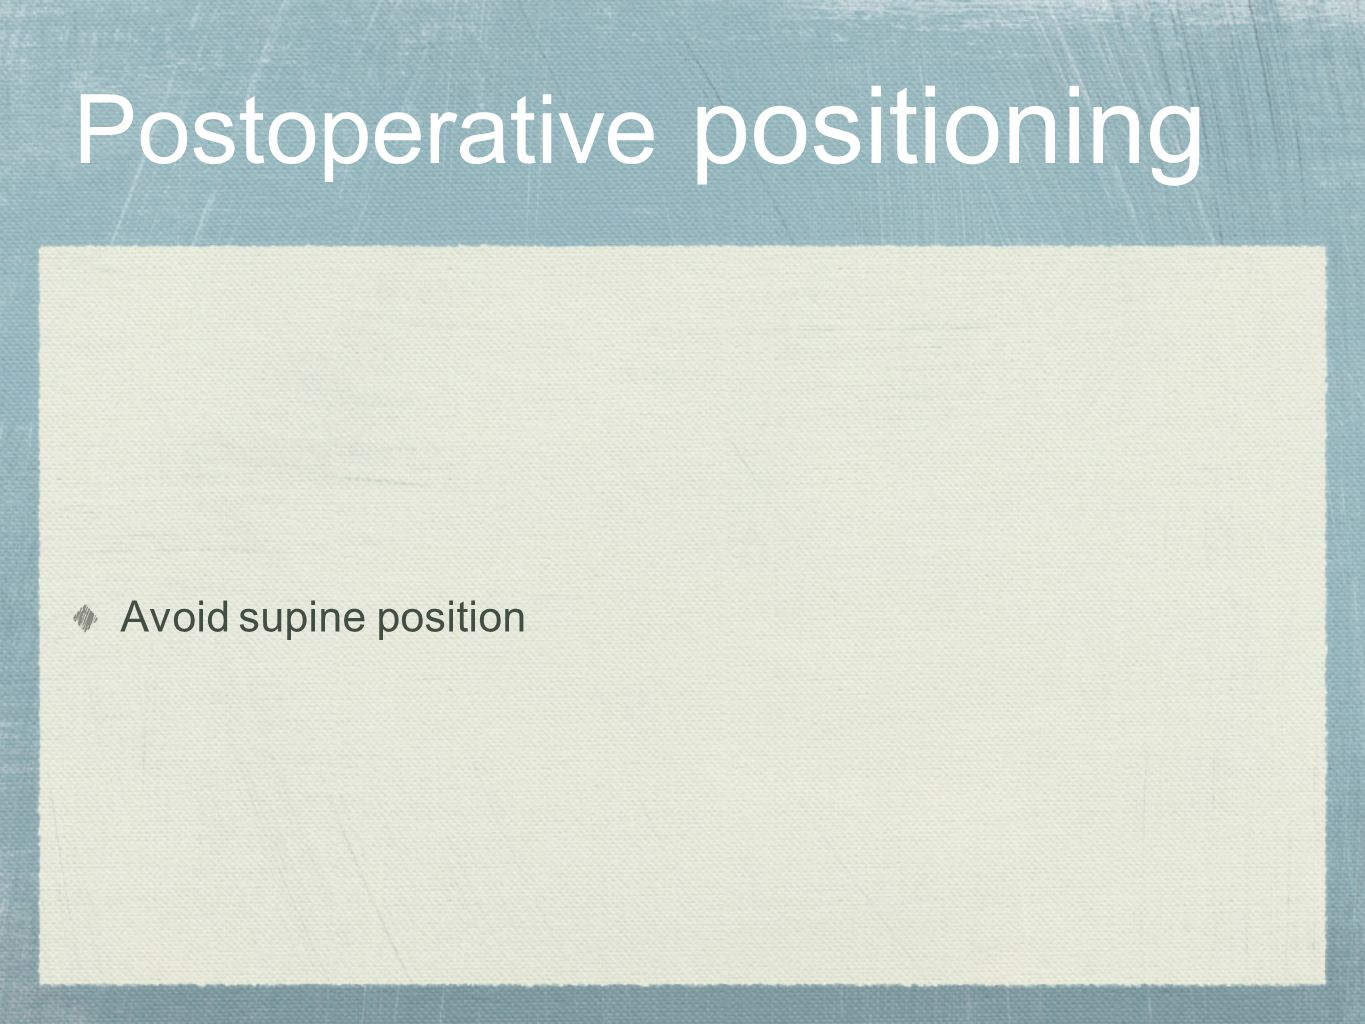 Postoperative positioning